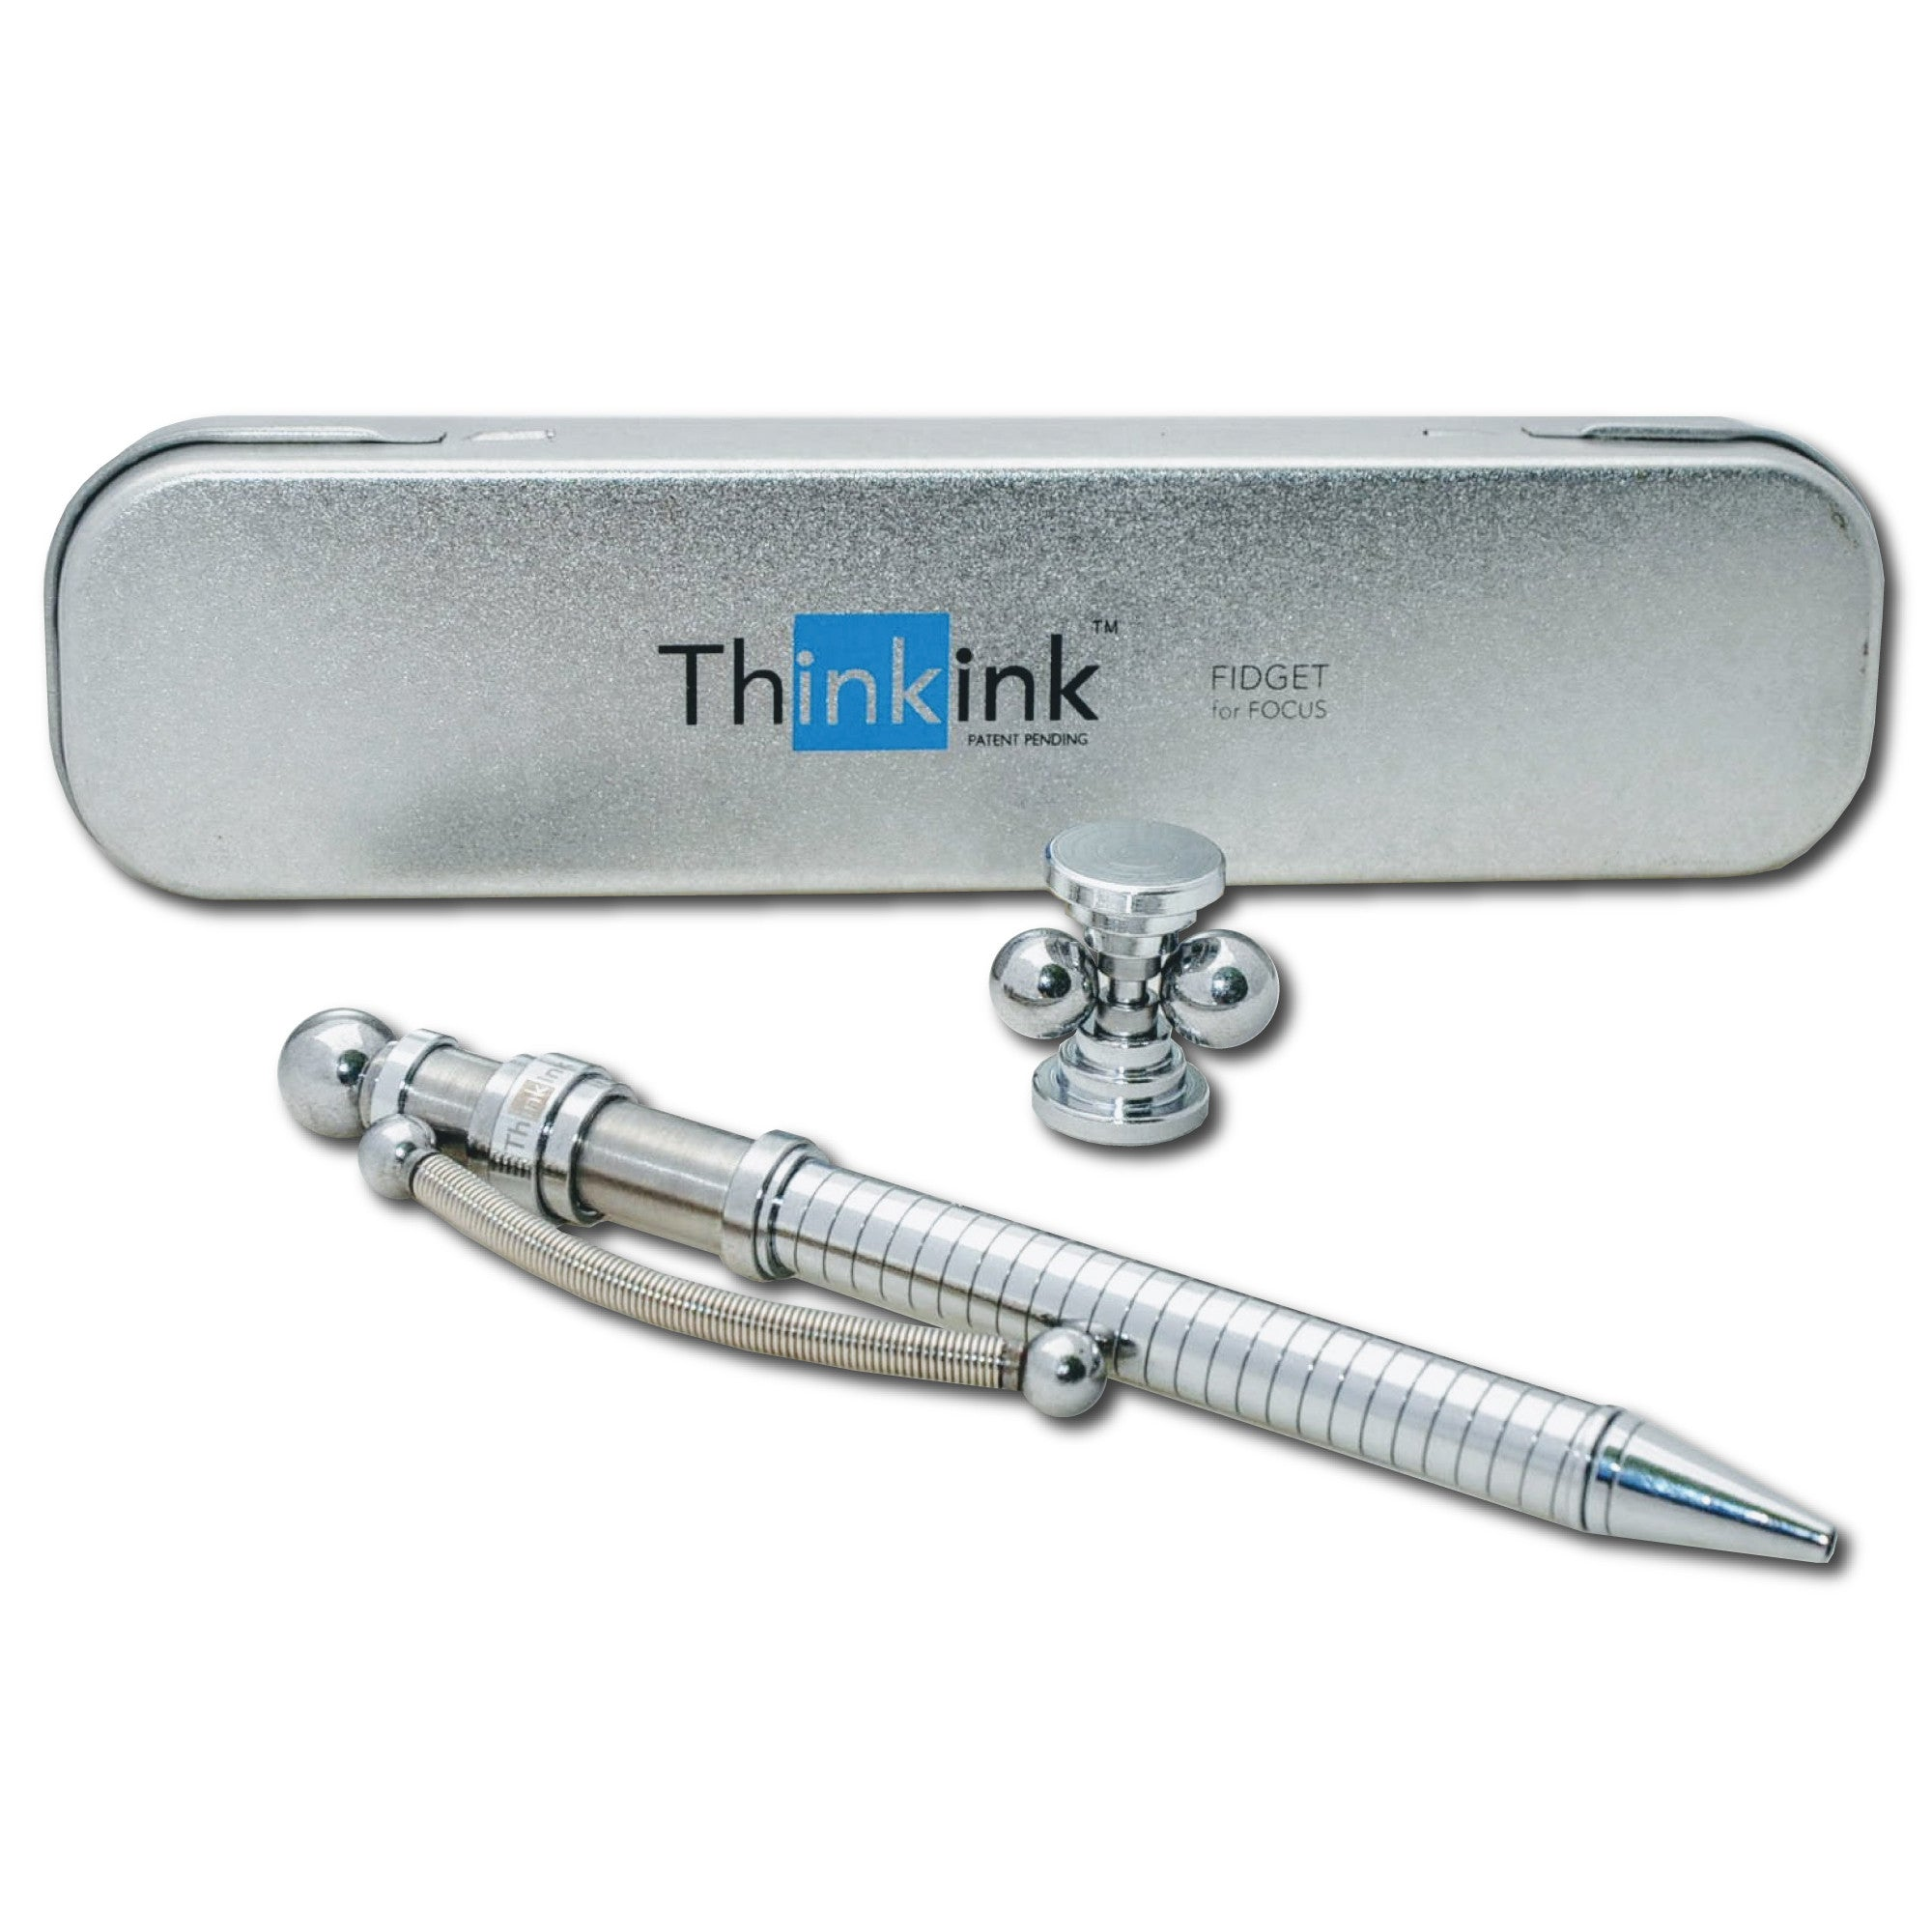 3 Think Ink Pen Bonus Desk Toy FREE Domestic Shipping